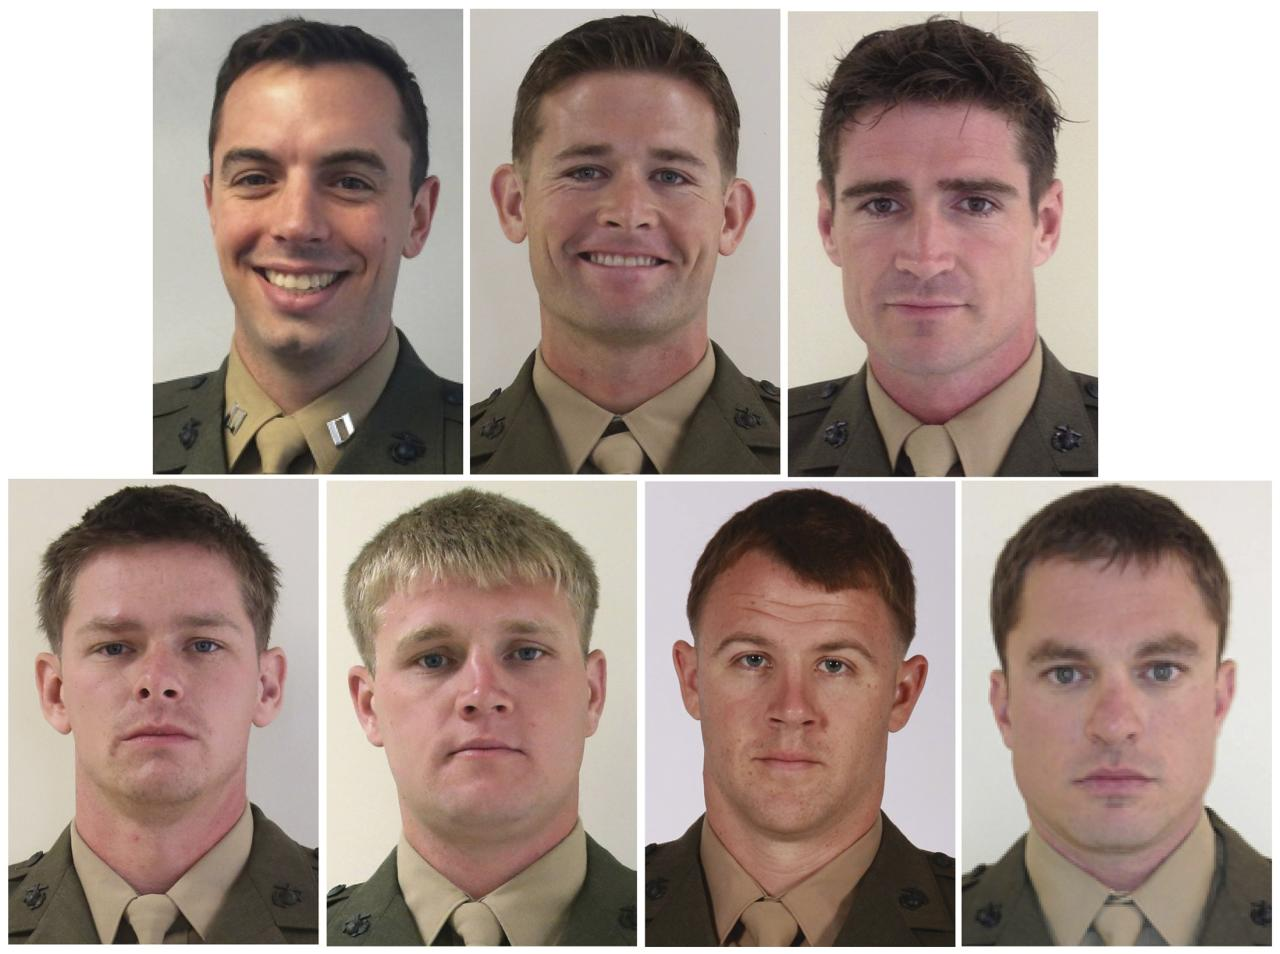 The seven U.S. Marines who were killed when their UH-60 Black Hawk helicopter crashed into the Santa Rosa Sound off the Florida panhandle on Tuesday night are seen in a combination photo of U.S. Marine handout images released March 13, 2015.  The seven Marines were identified as (top row, L to R): Captain Stanford Shaw III, 31, of Basking Ridge, New Jersey; Staff Sergeant Trevor Blaylock, 29, of Lake Orion, Michigan; Staff Sergeant Liam Flynn, 33, of New York City; (bottom row, L to R): Staff Sergeant Marcus Bawol, 26, of Warren, Michigan; Staff Sergeant Kerry Kemp, 27, of Port Washington, Wisconsin; Staff Sergeant Andrew Seif, 26, of Holland, Michigan and Master Sergeant Thomas Saunders, 33, of Williamsburg, Virginia.  REUTERS/US Marine Corps/Handout via Reuters  (UNITED STATES - Tags: TRANSPORT DISASTER MILITARY OBITUARY) THIS IMAGE HAS BEEN SUPPLIED BY A THIRD PARTY. IT IS DISTRIBUTED, EXACTLY AS RECEIVED BY REUTERS, AS A SERVICE TO CLIENTS. FOR EDITORIAL USE ONLY. NOT FOR SALE FOR MARKETING OR ADVERTISING CAMPAIGNS